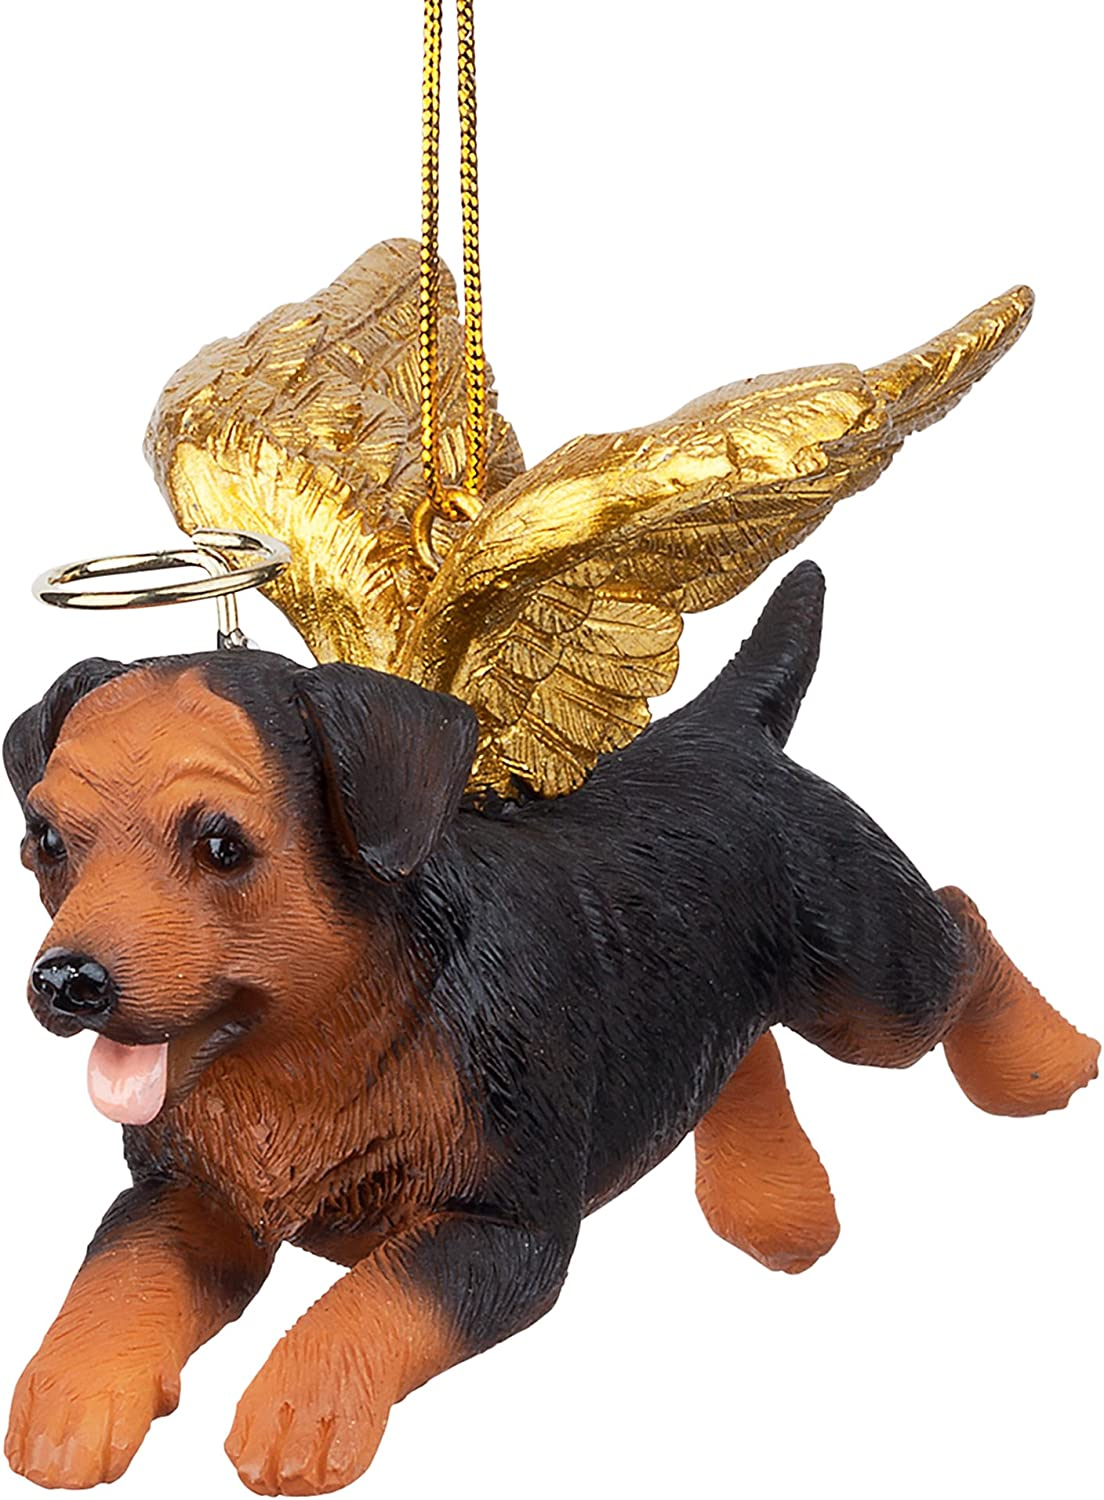 Design Toscano Jh170727 Christmas Tree Ornaments Honor The Pooch Rottweiler Holiday Angel Dog Ornaments Multi Multicolor Home Kitchen